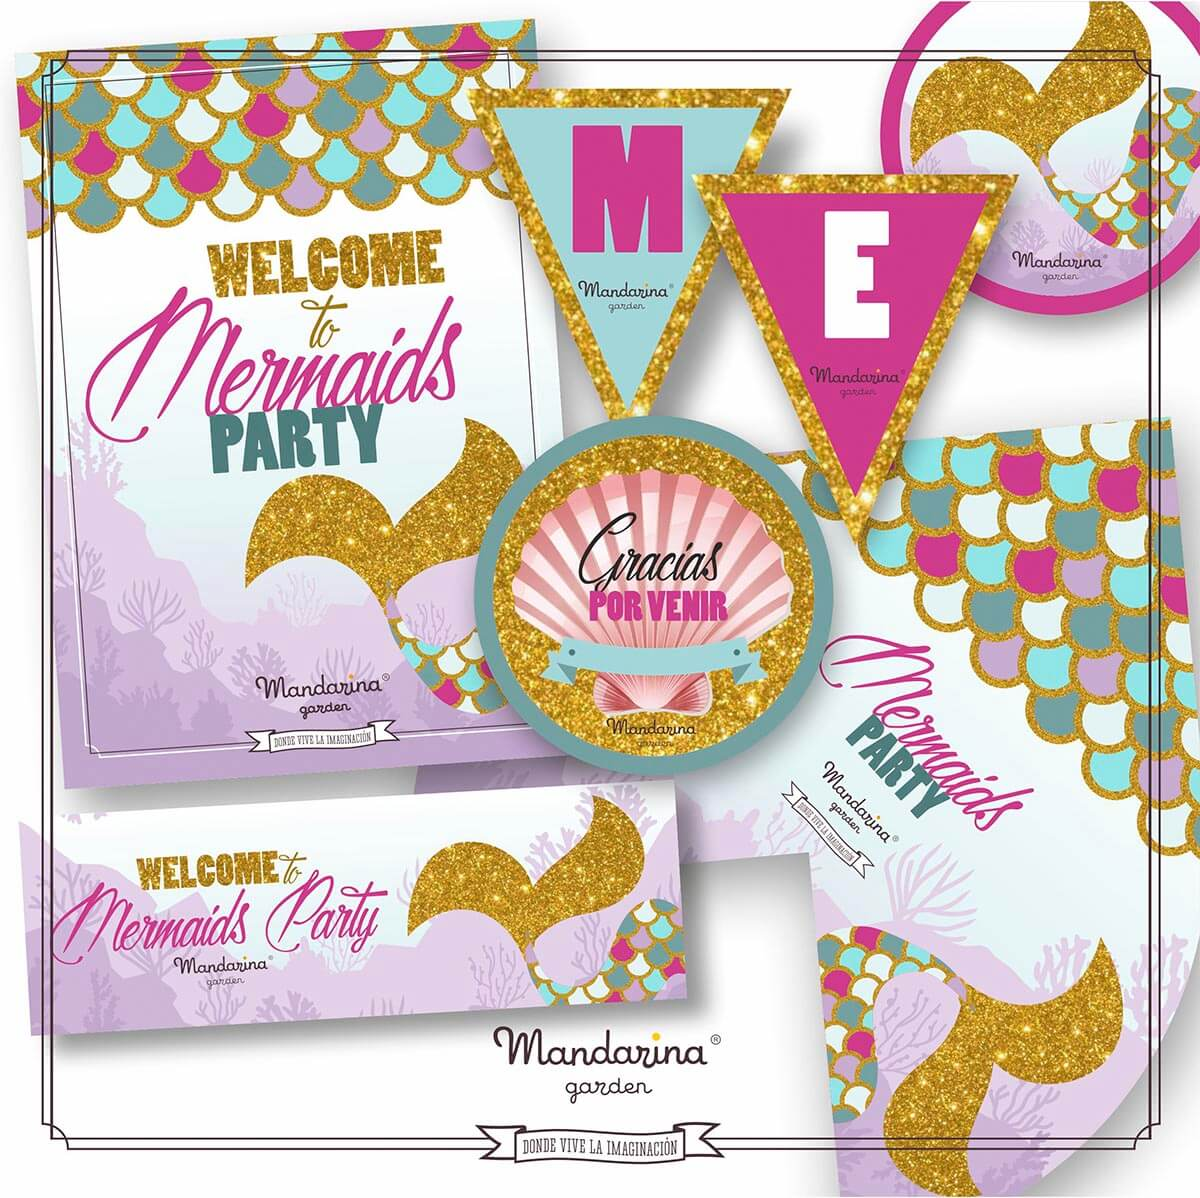 Decoration kit to celebrate your birthday at home themed bye Mermaid